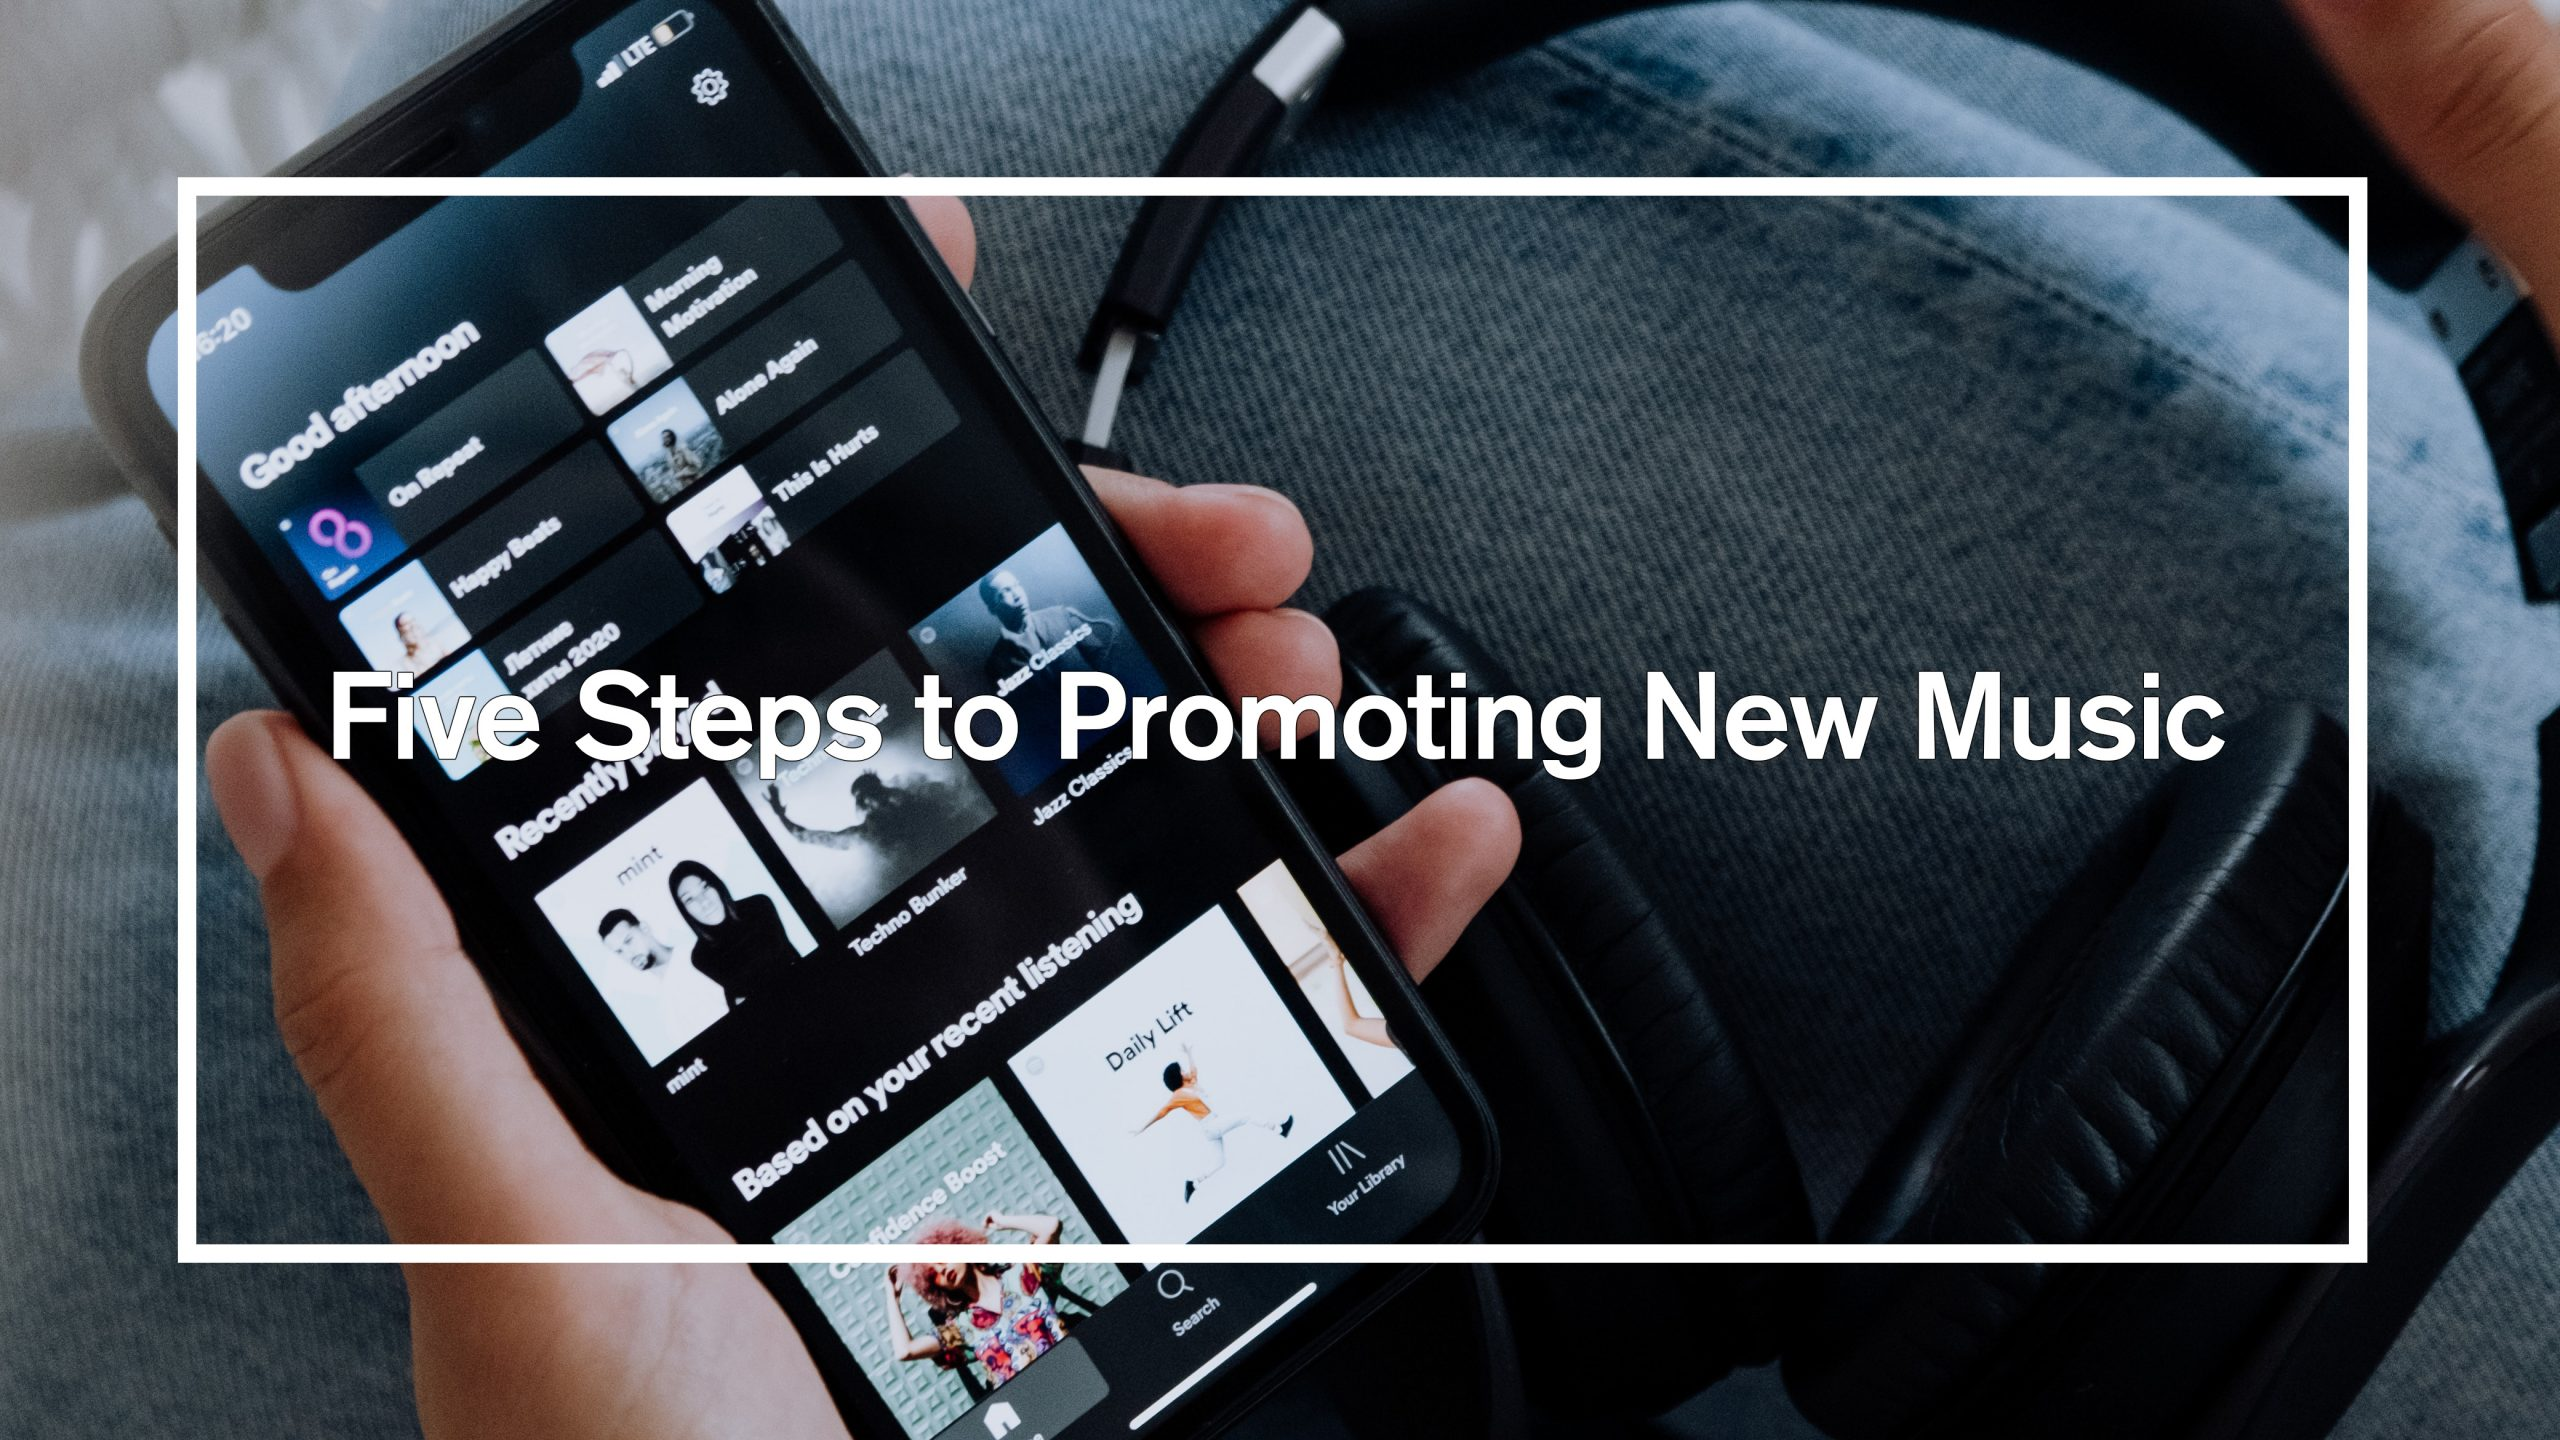 Five Steps to Promoting New Music